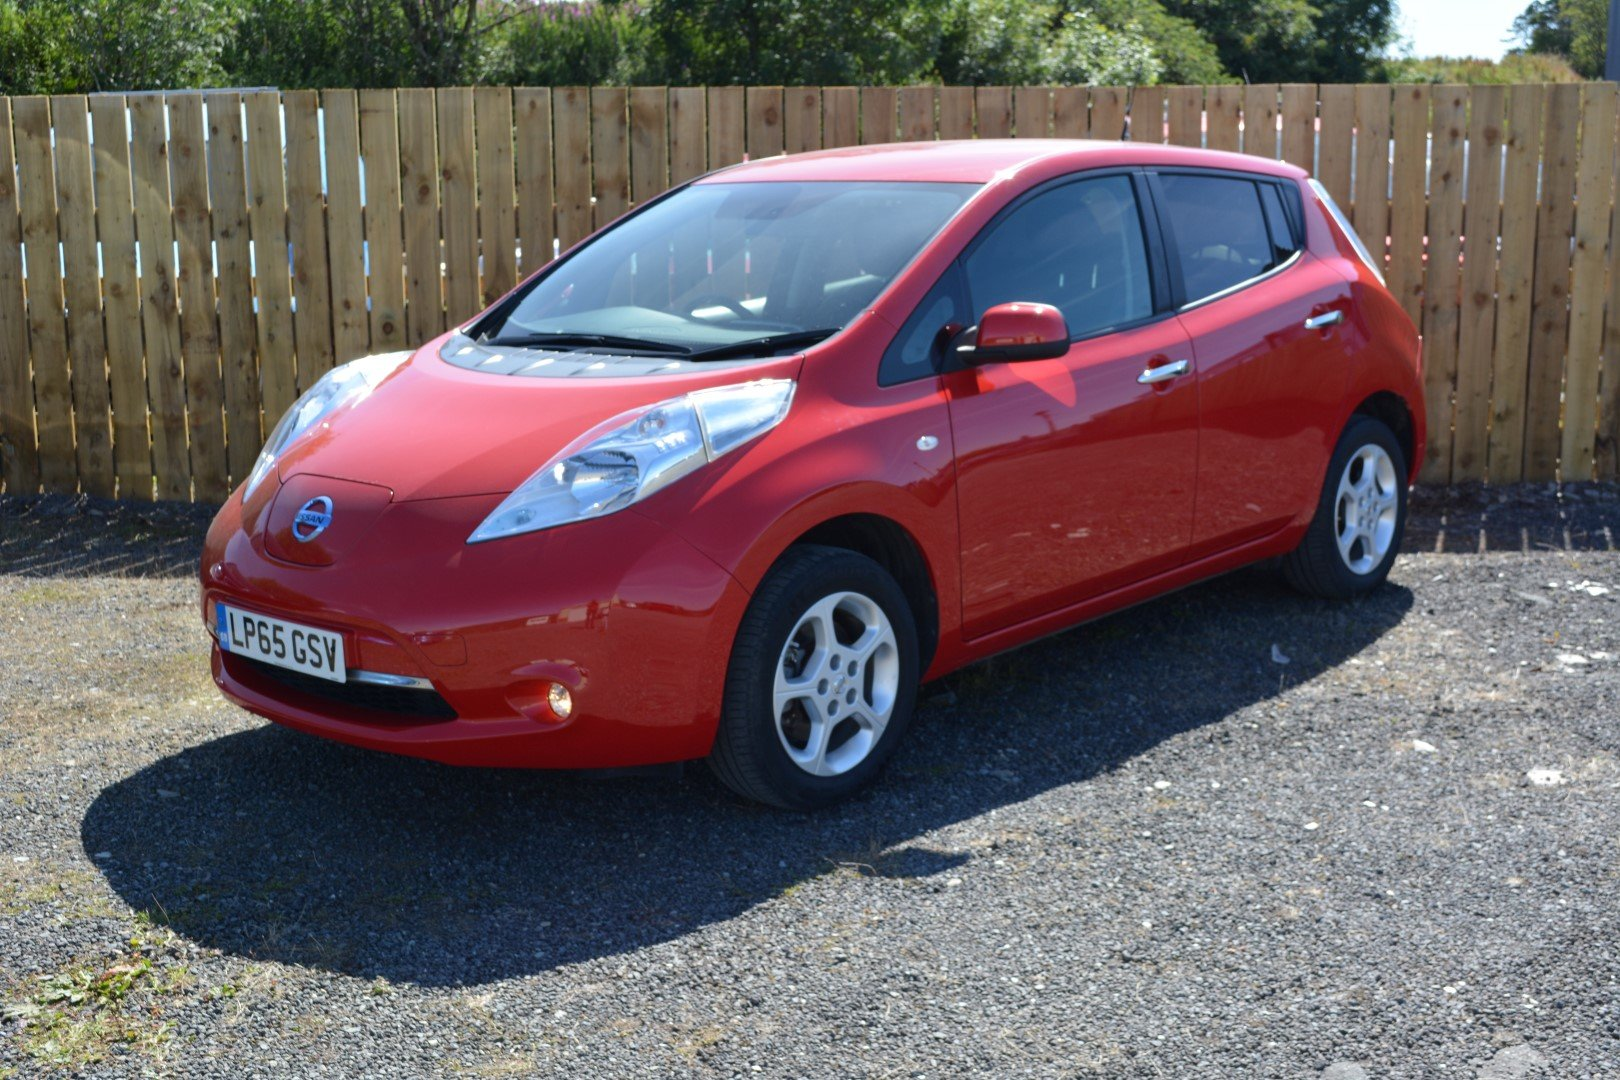 2016 2015 Nissan Leaf 24kwh Acenta 6.6kw Charger For Sale (picture 1 of 6)